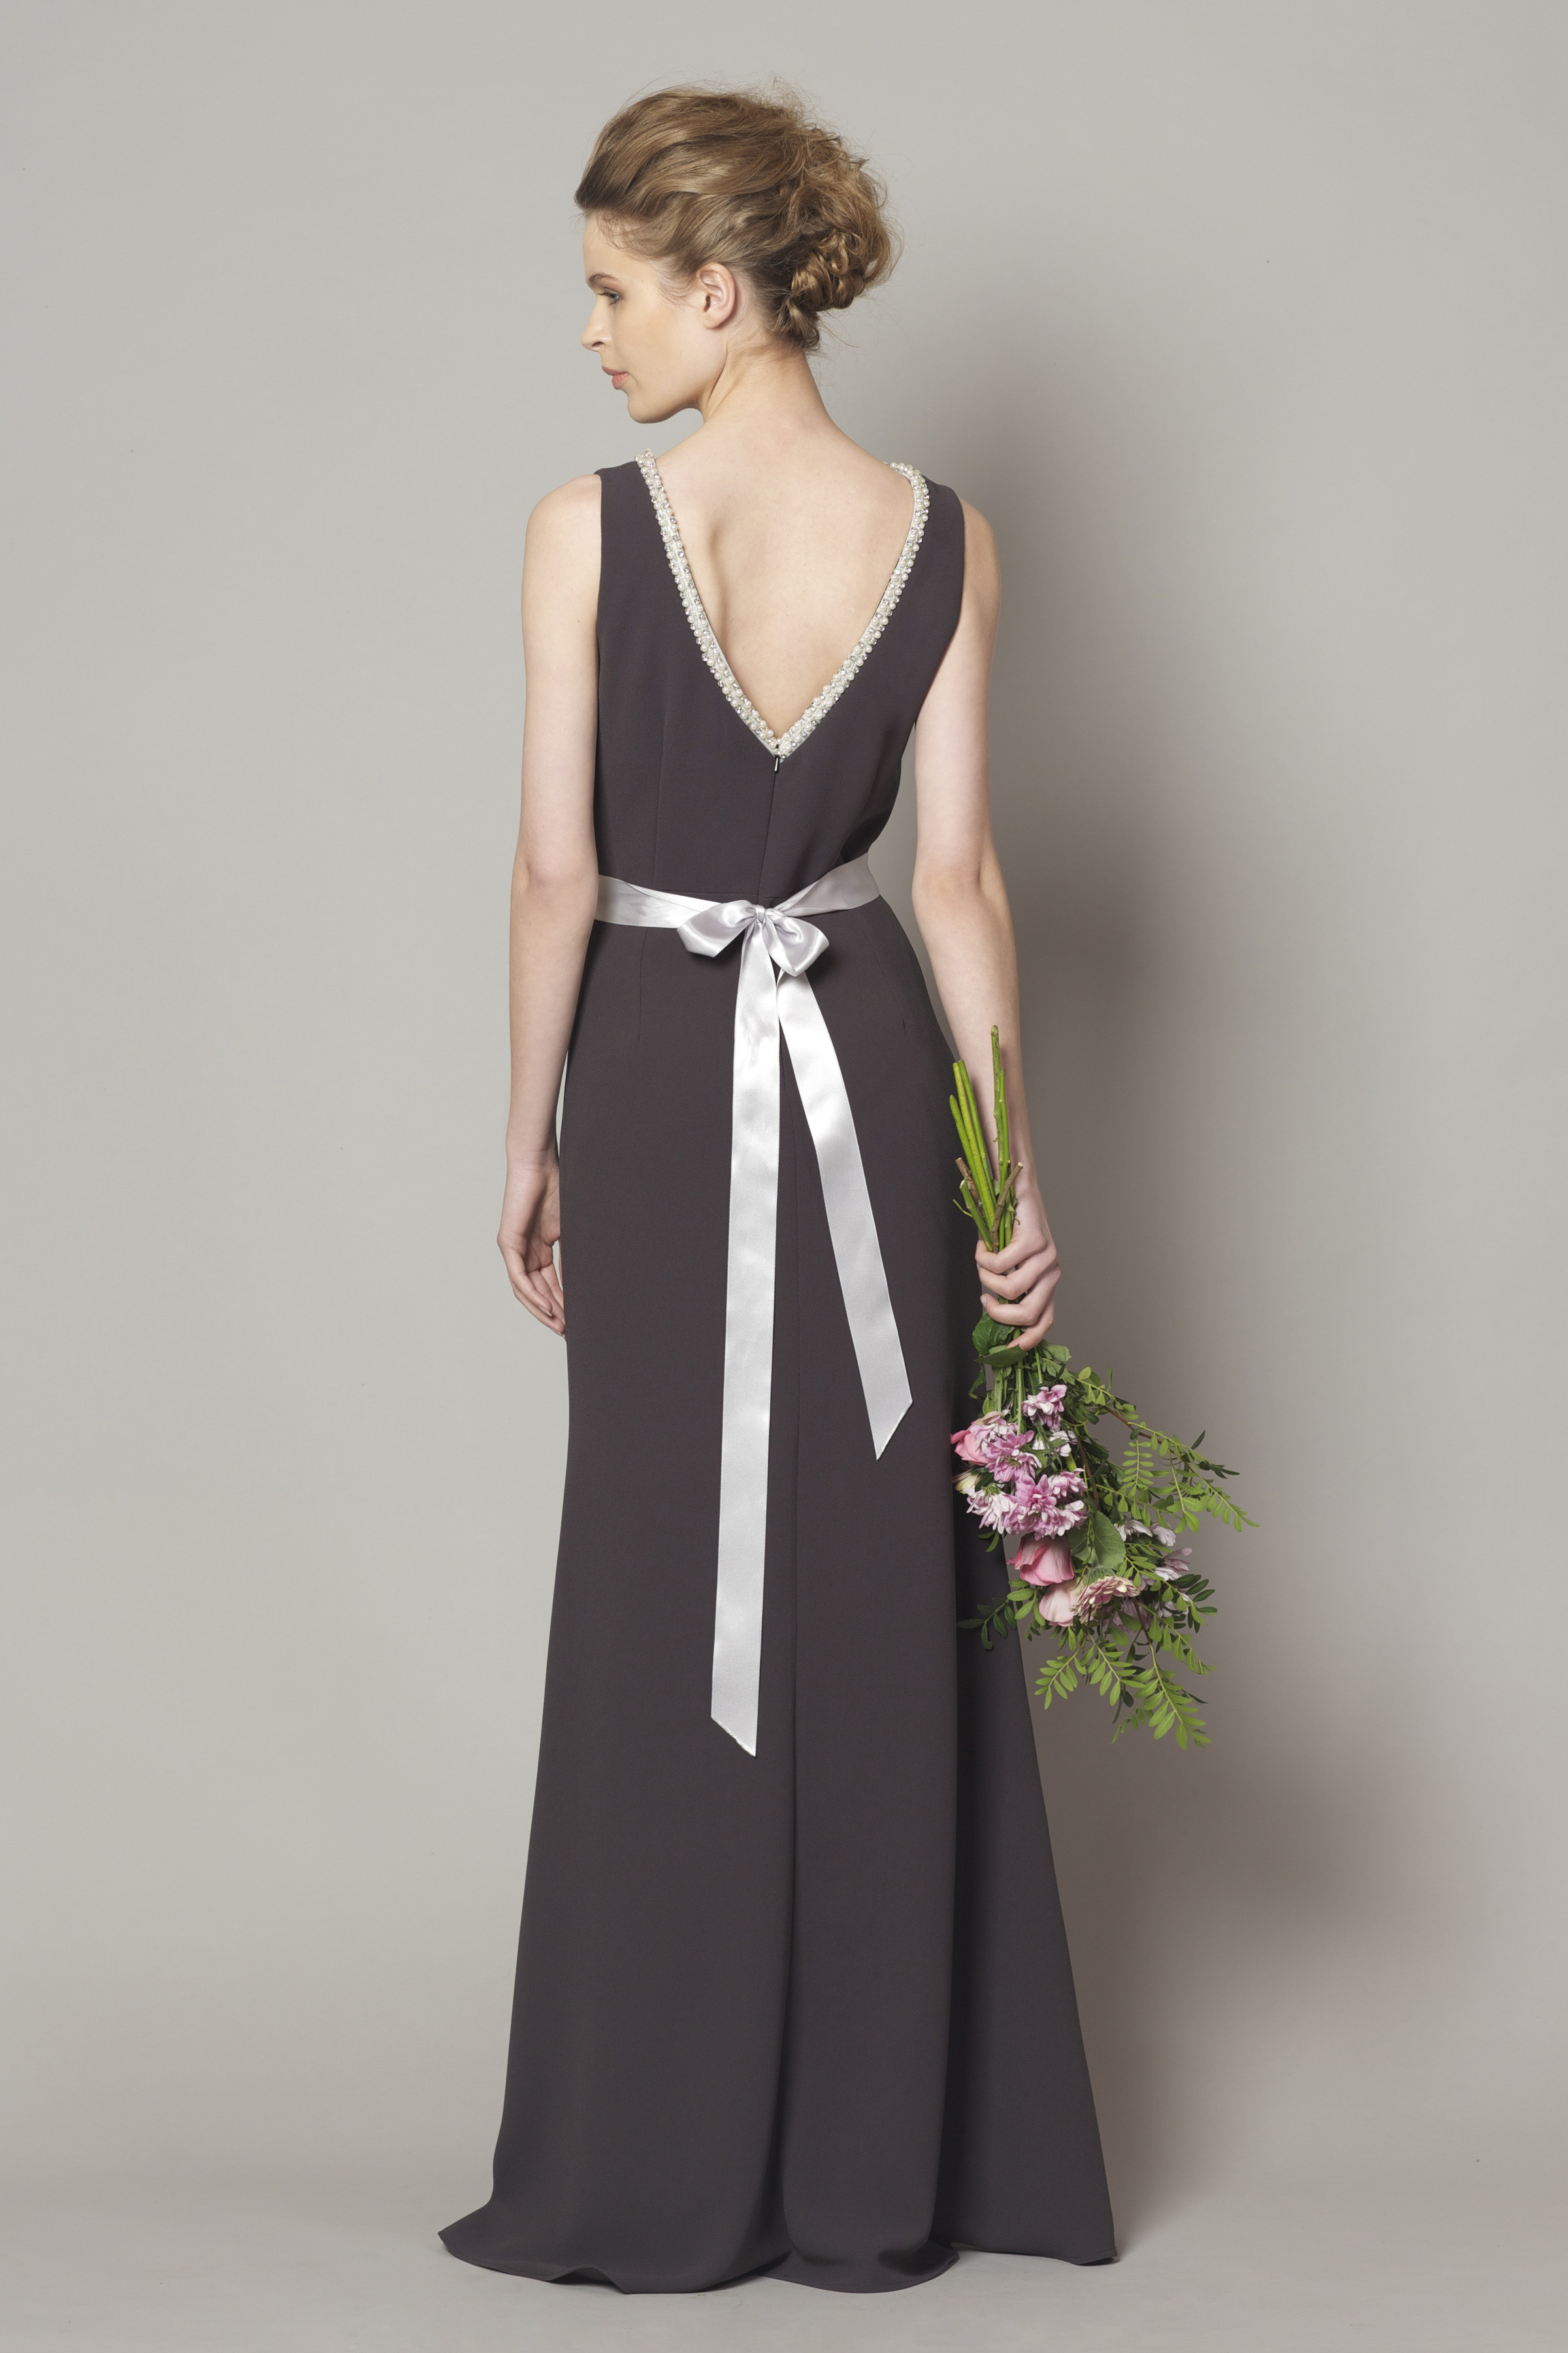 ade7179c77706 Slate Grey style DC1170 - Bridesmaid Evening   Debs Dresses from ...